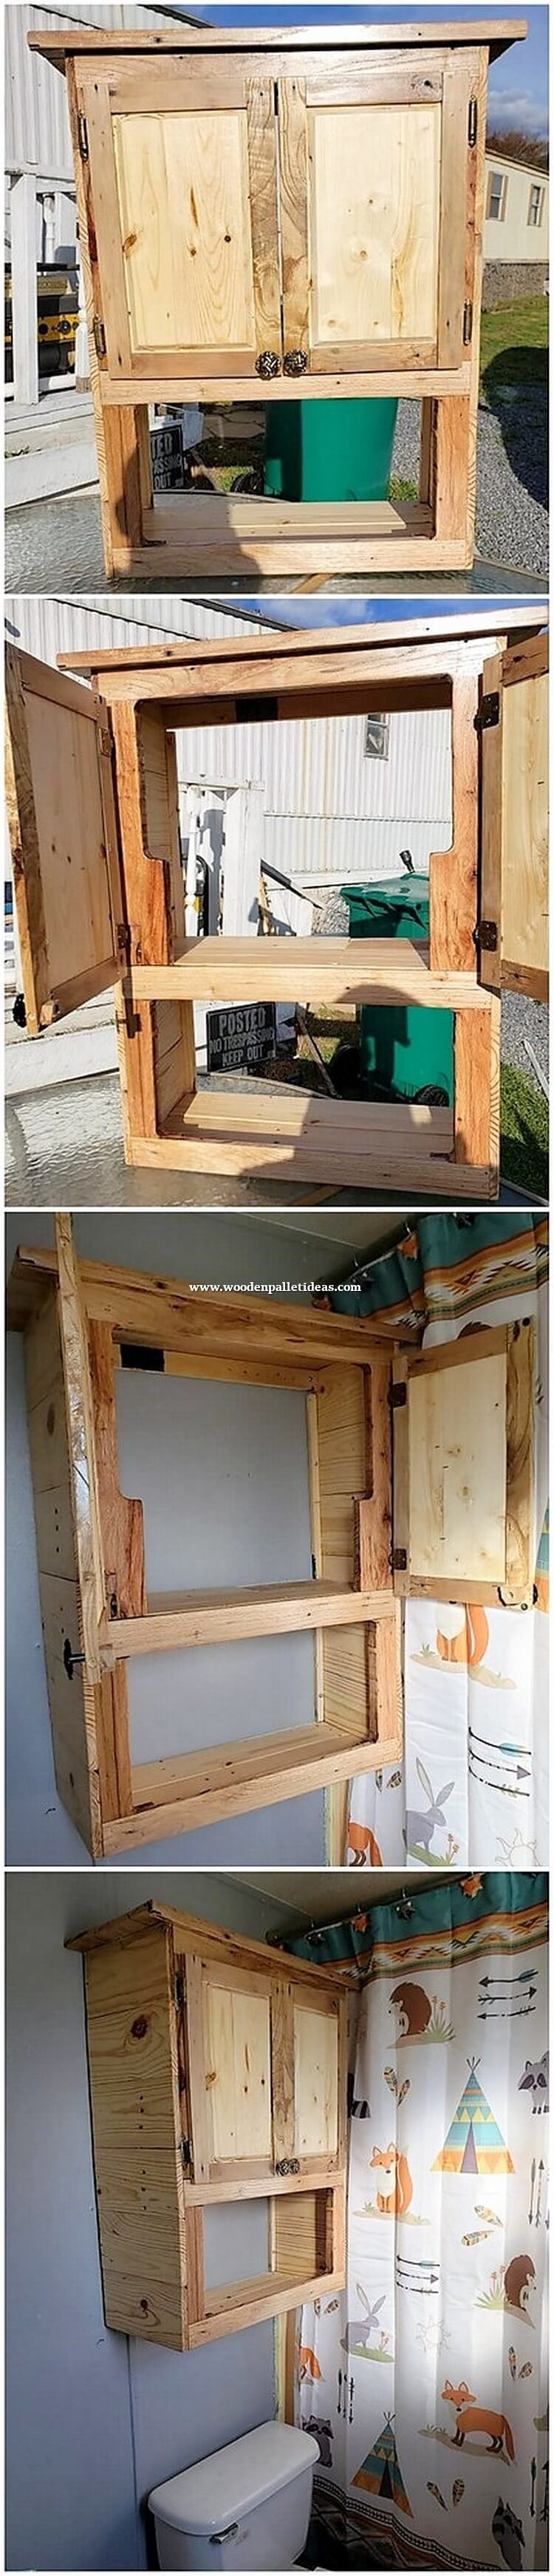 Pallet Bathroom Wall Cabinet